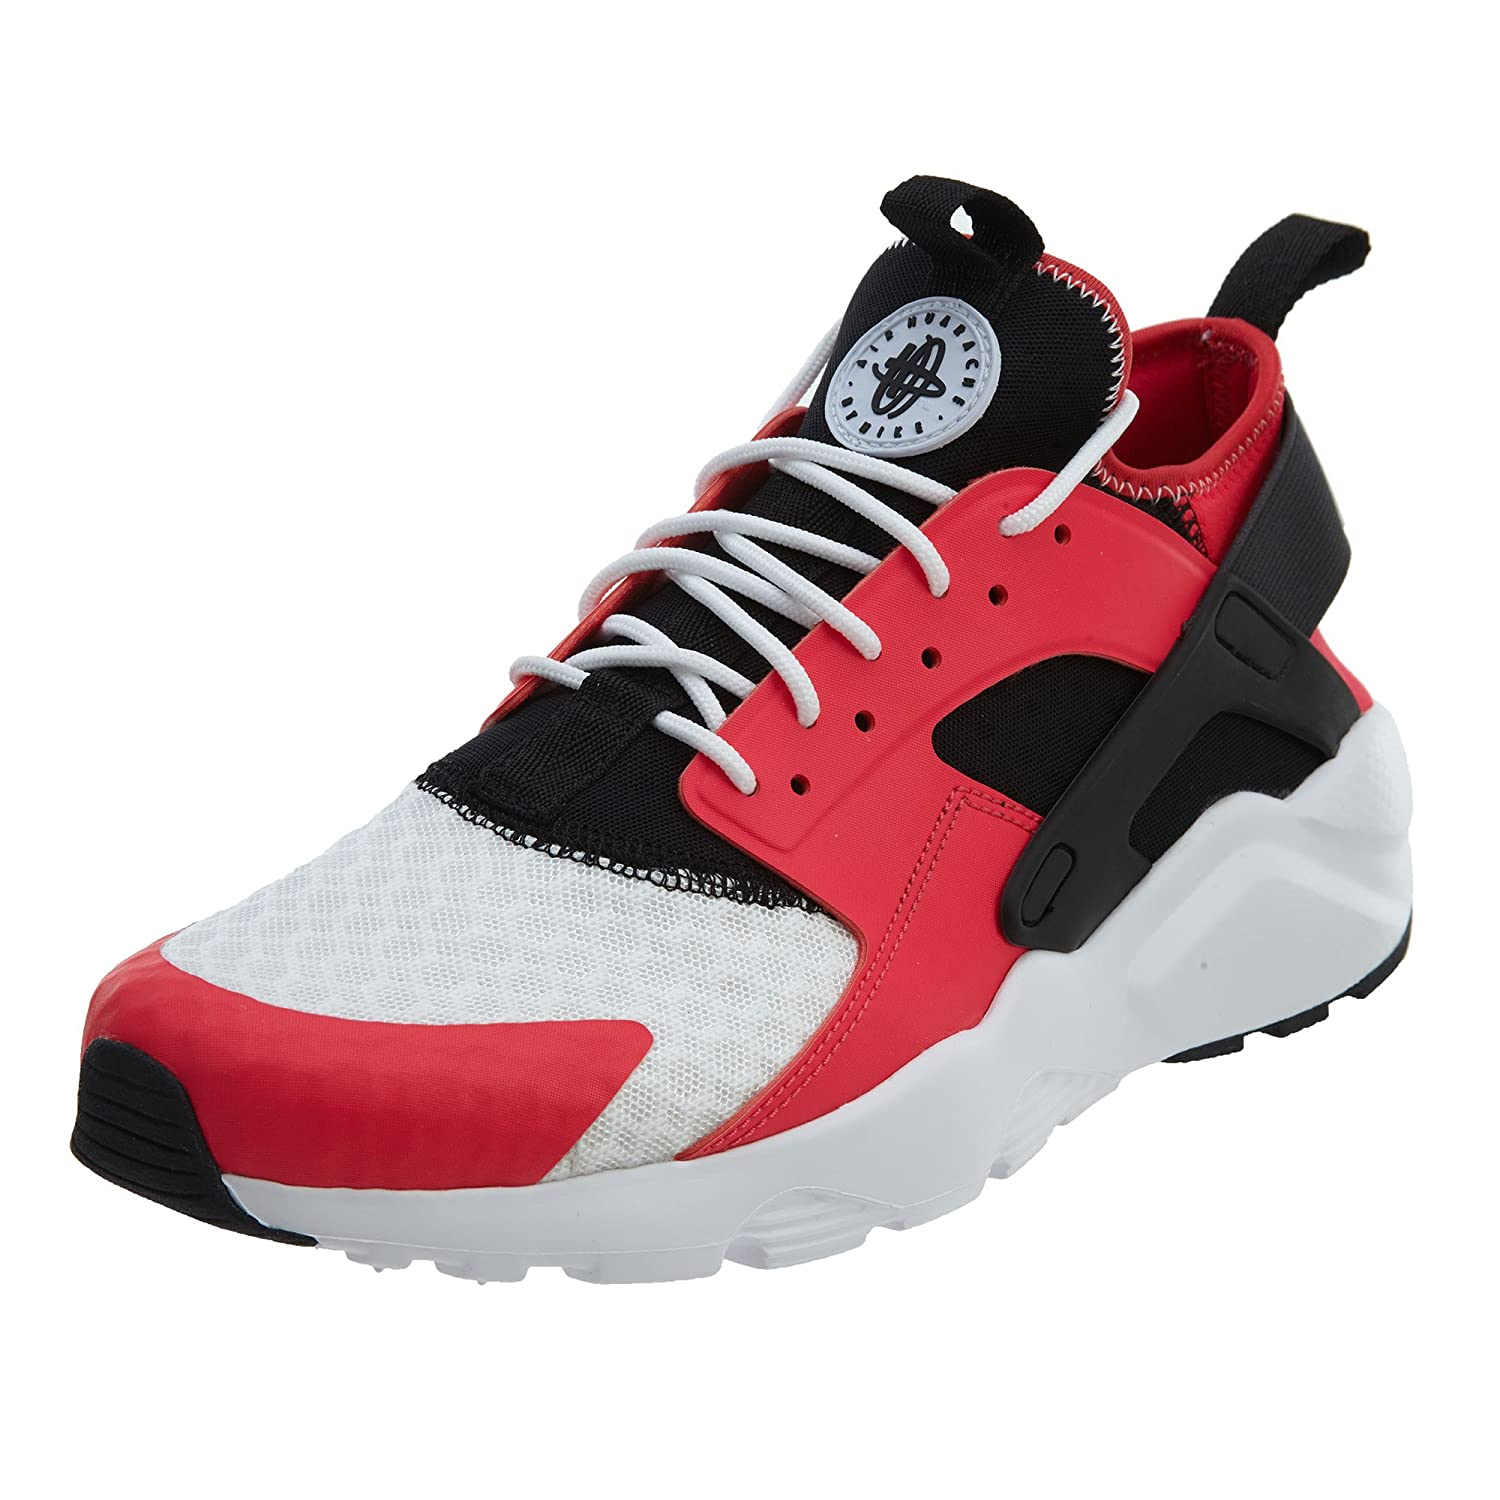 [ナイキ] スニーカー AIR HUARACHE RUN ULTRA 819685-101 B07457LSYZ 8.5 D(M) US|Siren Red/Black Siren Red/Black 8.5 D(M) US